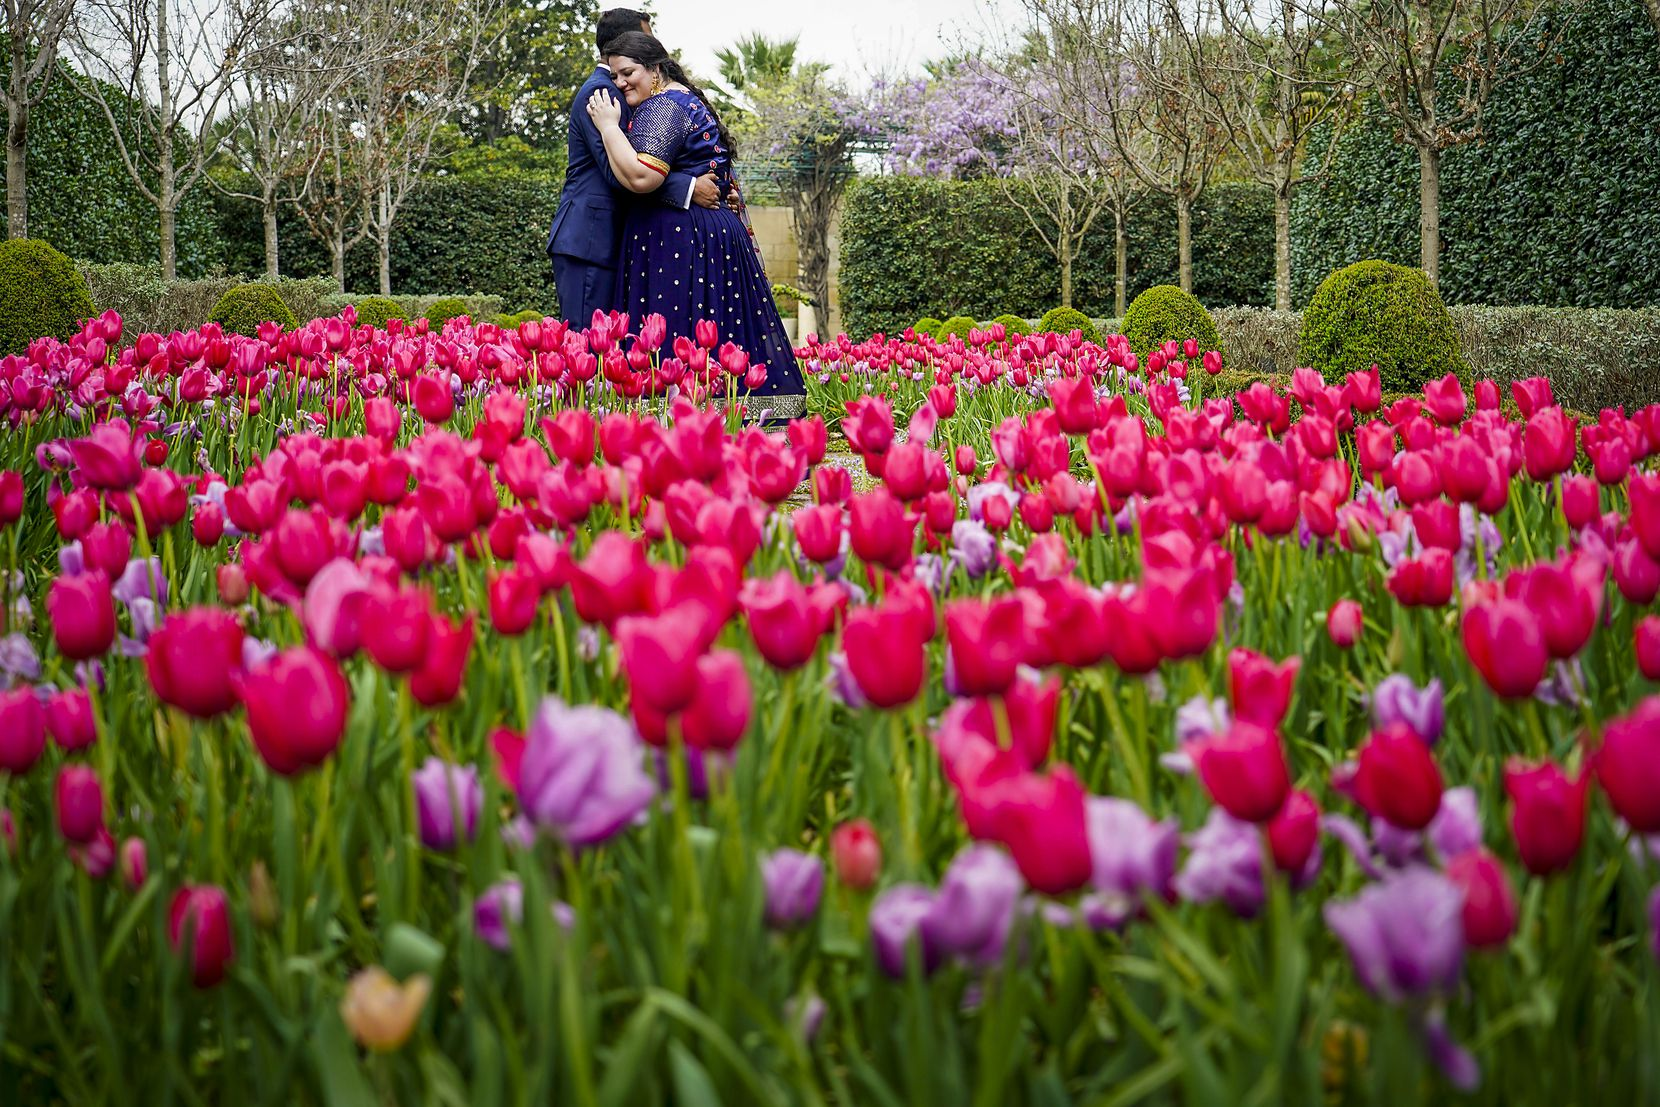 """Newlyweds Laura Remson and Abhishek Ravi posed for wedding photos after being married on the first day of spring at the nearly empty Dallas Arboretum on March 19, 2020.  The couple had planned a five-day, 250-person wedding in India with all of the traditional events, """"but that had to be postponed, revamped"""" due to the coronavirus, the bride said. """"We hope to do that eventually.""""  Moving to the arboretum became the """"backup plan,"""" she said with a laugh. """"We were looking for options to elope and still use the date that we had originally planned, and looking for something just small and intimate, and we are so glad the arboretum didn't close for events."""" So instead, they were married with just the bride's parents and sister present, along with photographer and officiant to keep the party under the city-mandated 10-person limit."""